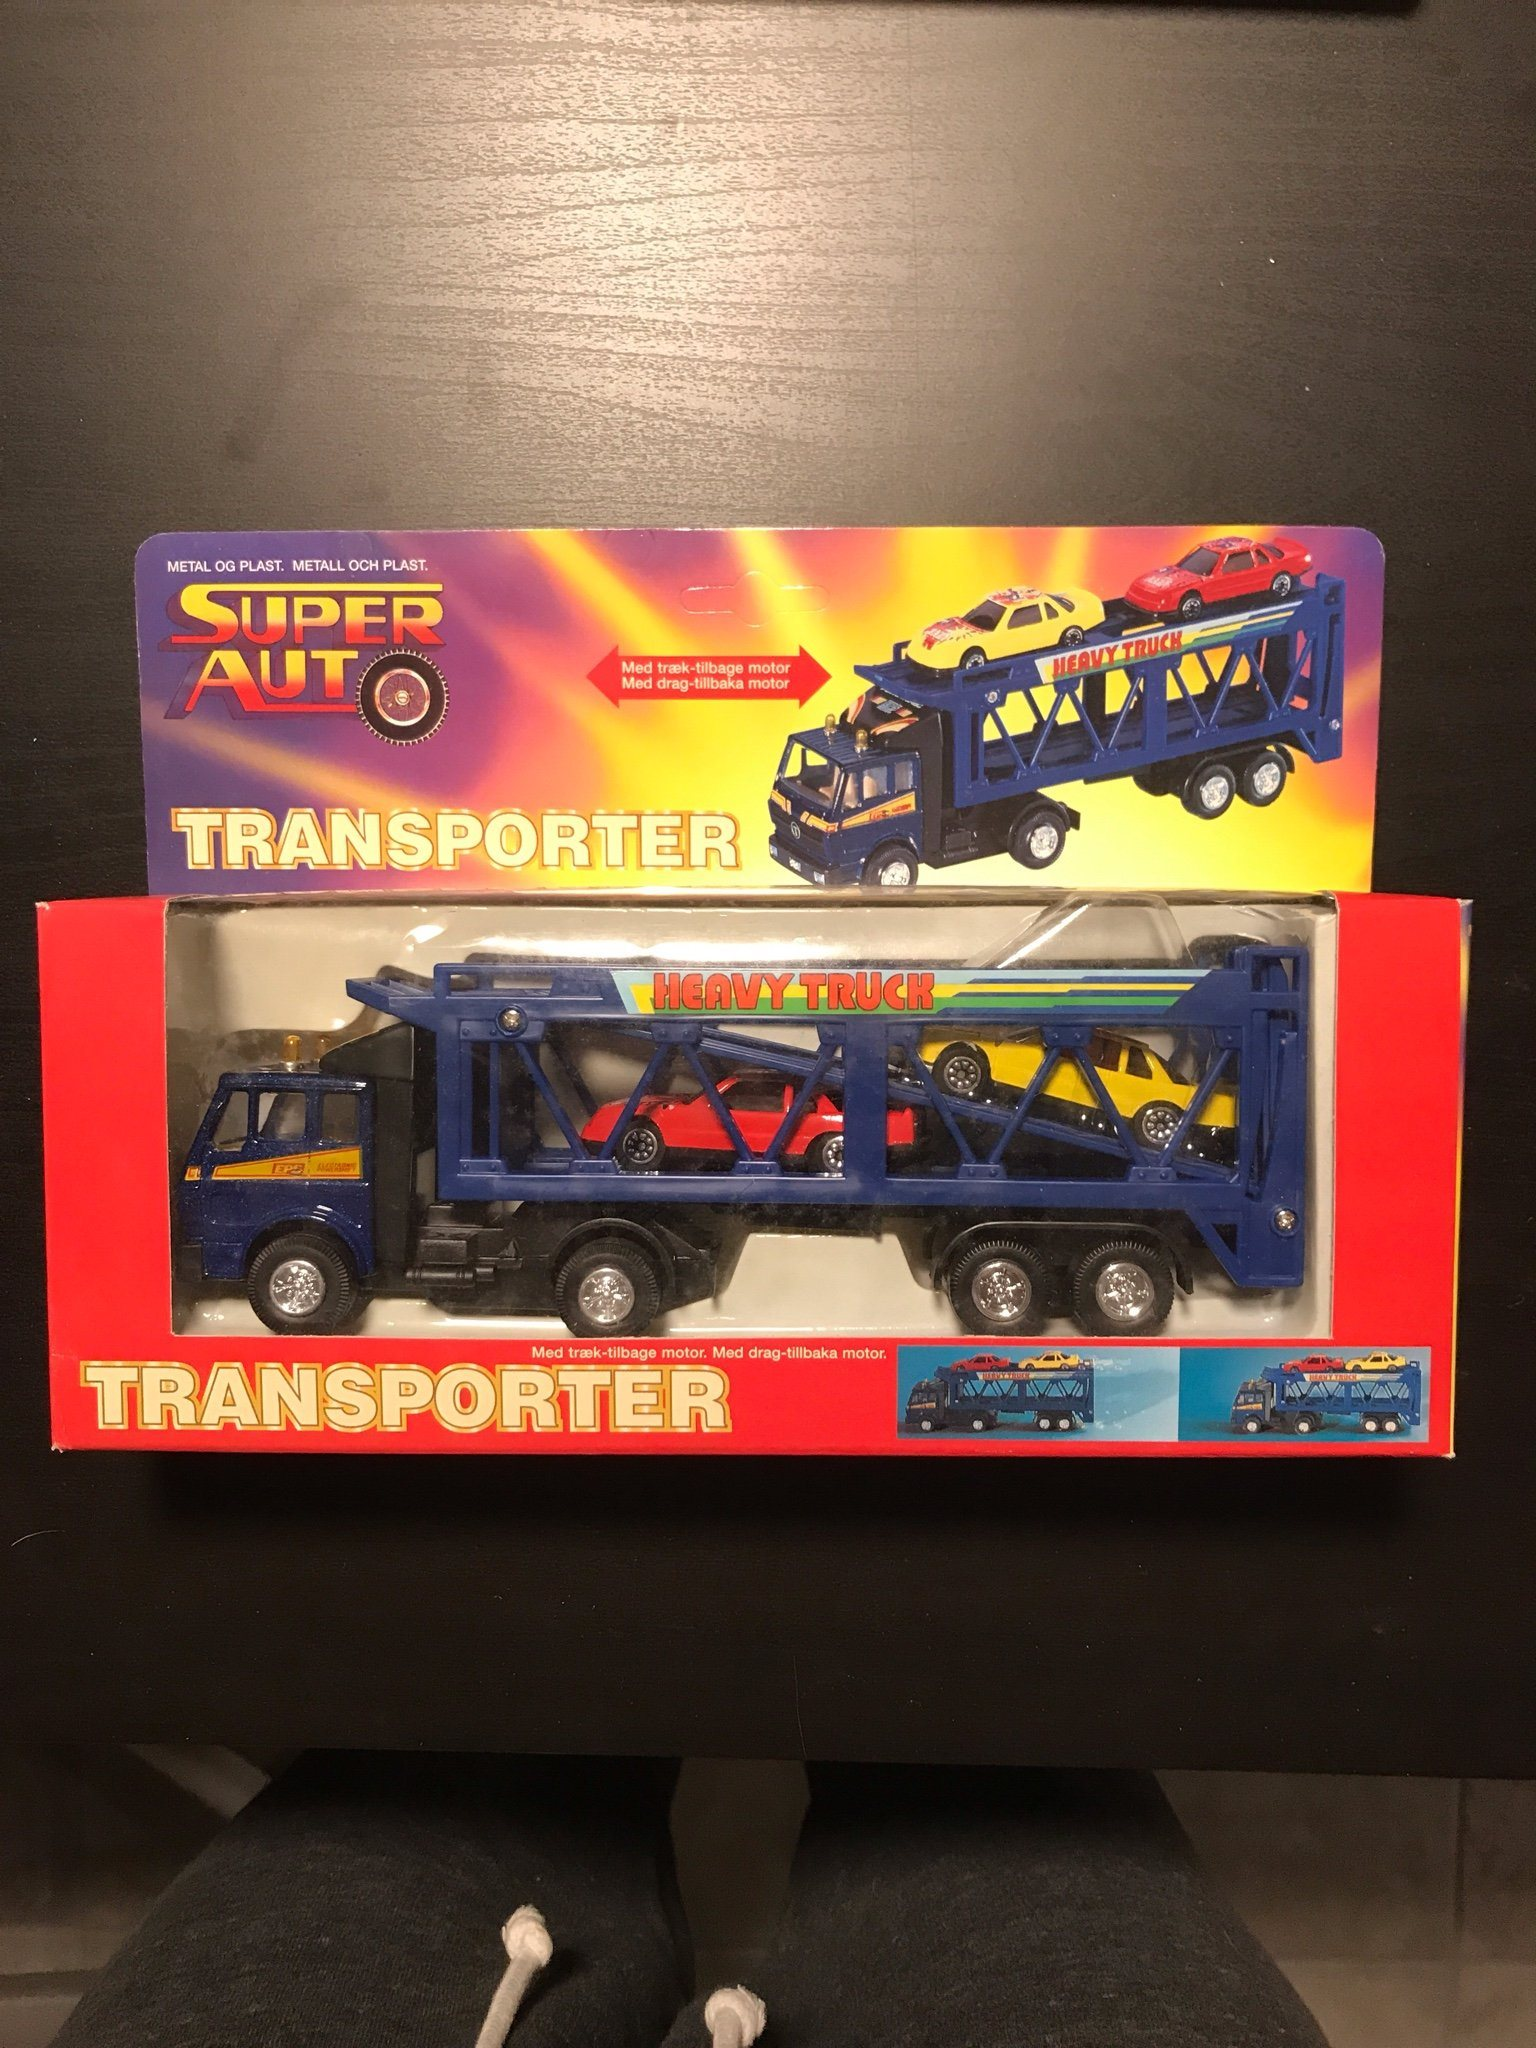 Super Auto Transporter Toy club